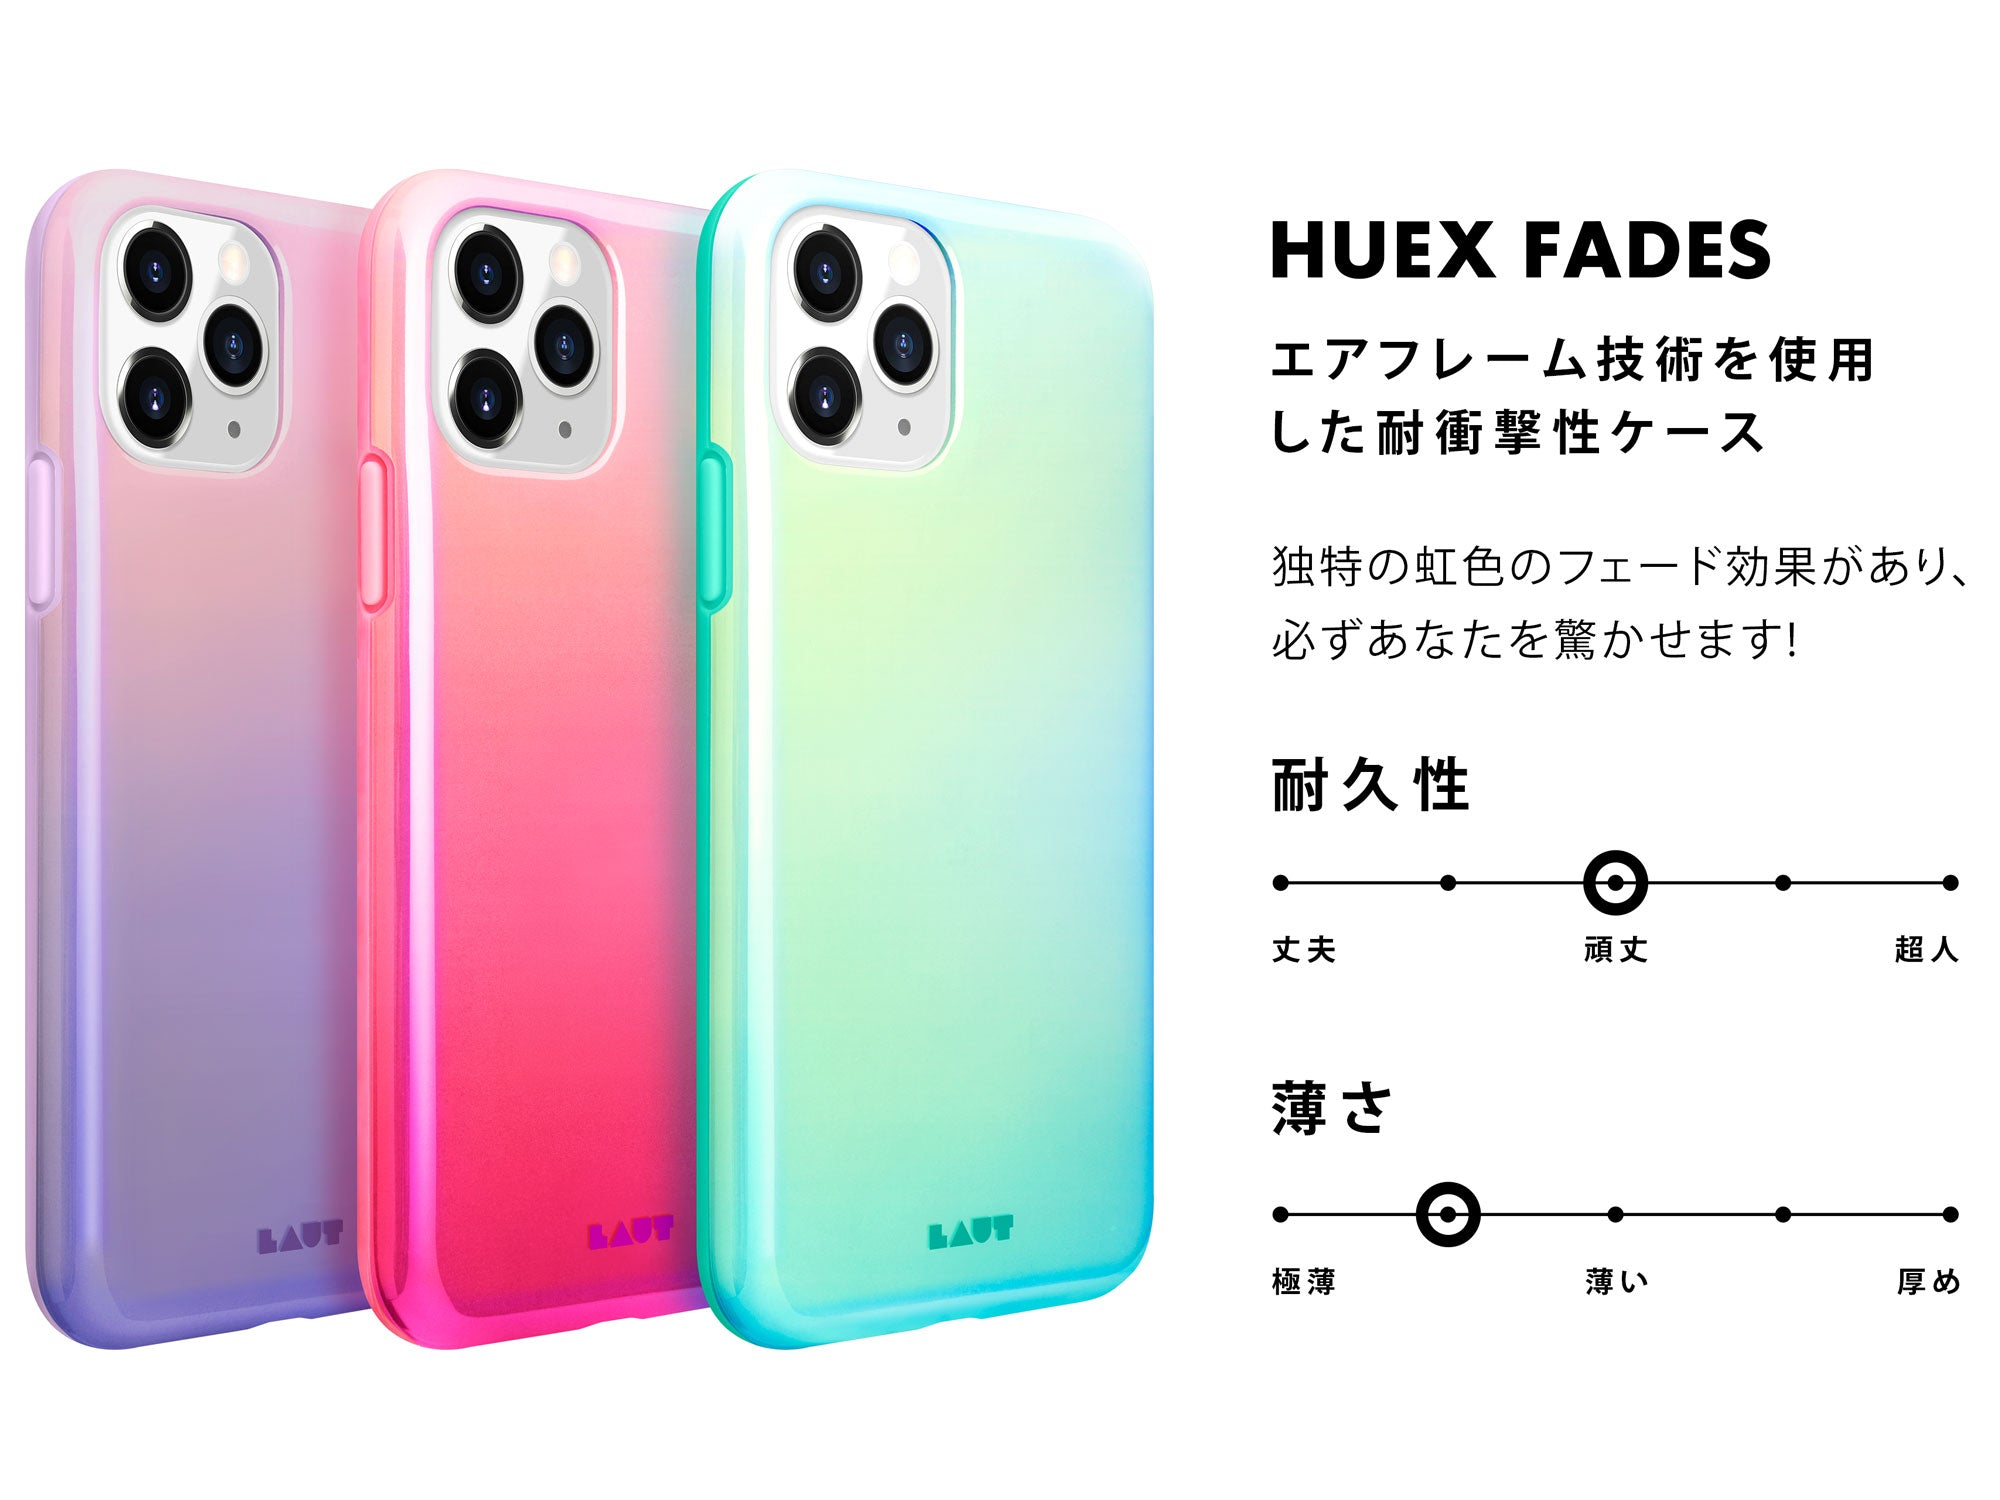 LAUT HUEX FADES for iPhone 11 | iPhone 11 Pro | iPhone 11 Pro Max